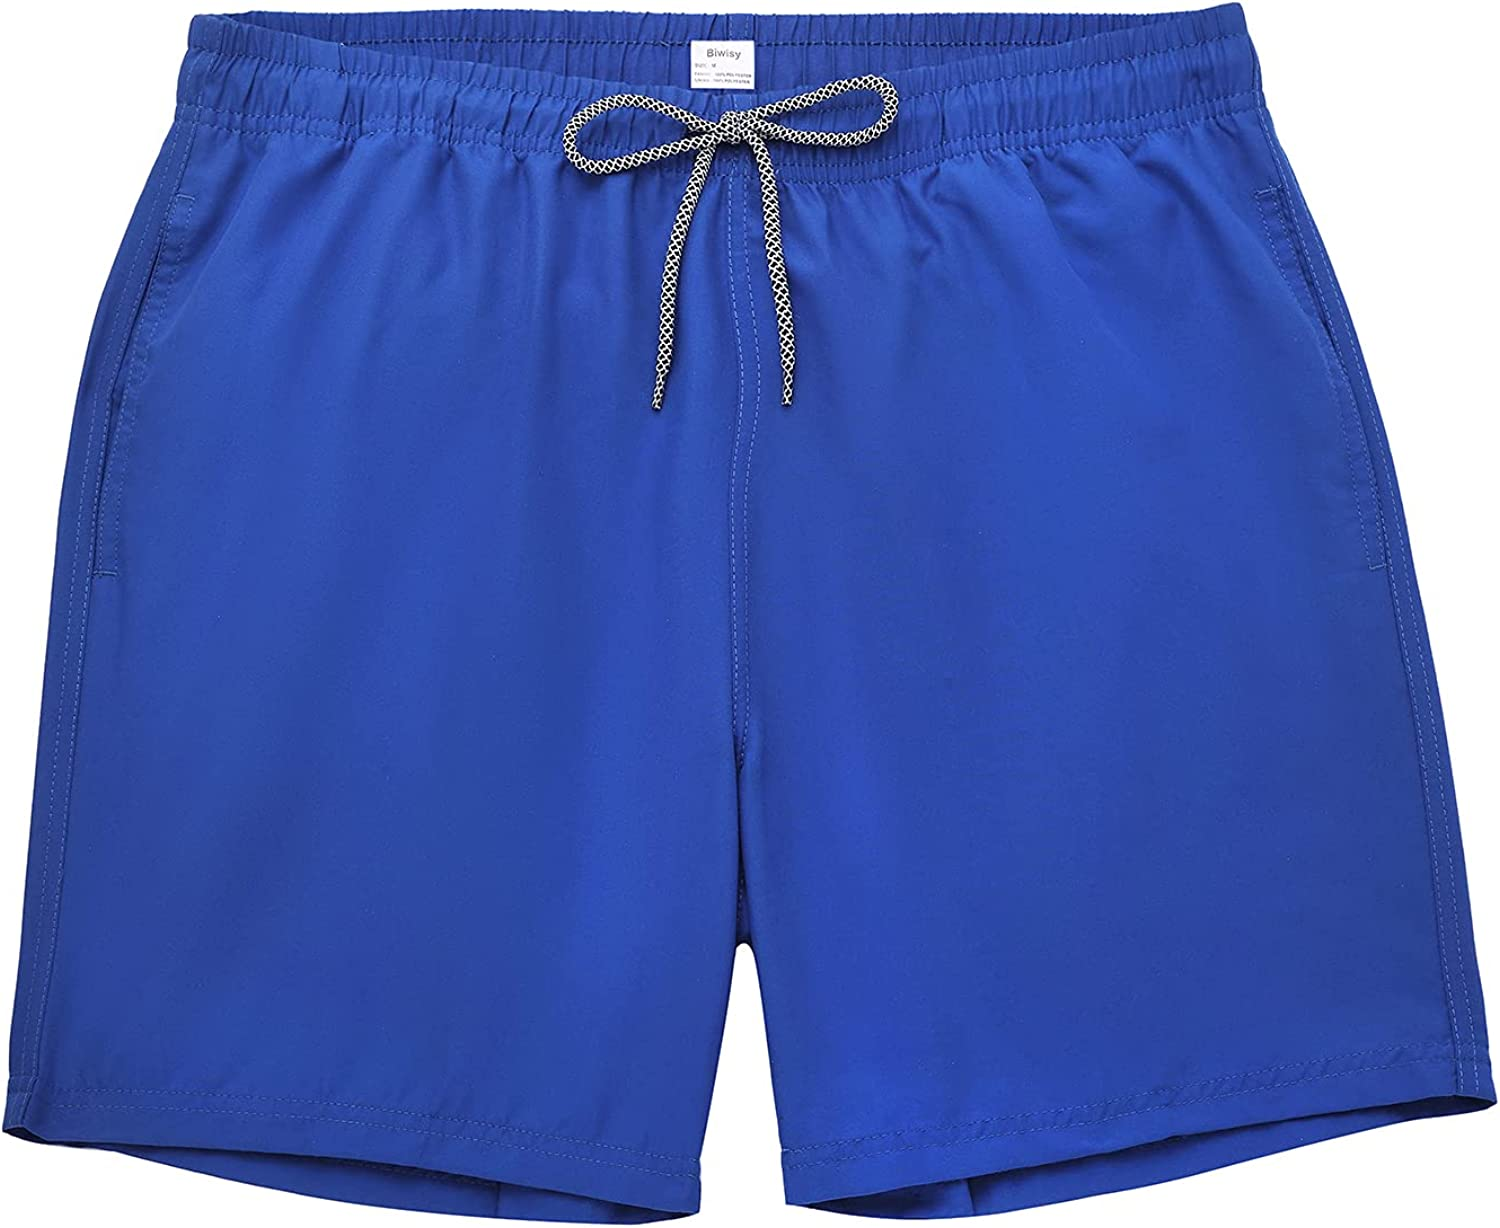 Biwisy Mens Swim Trunks Sale special price Quick Dry Mesh Recommended with Lining F Shorts